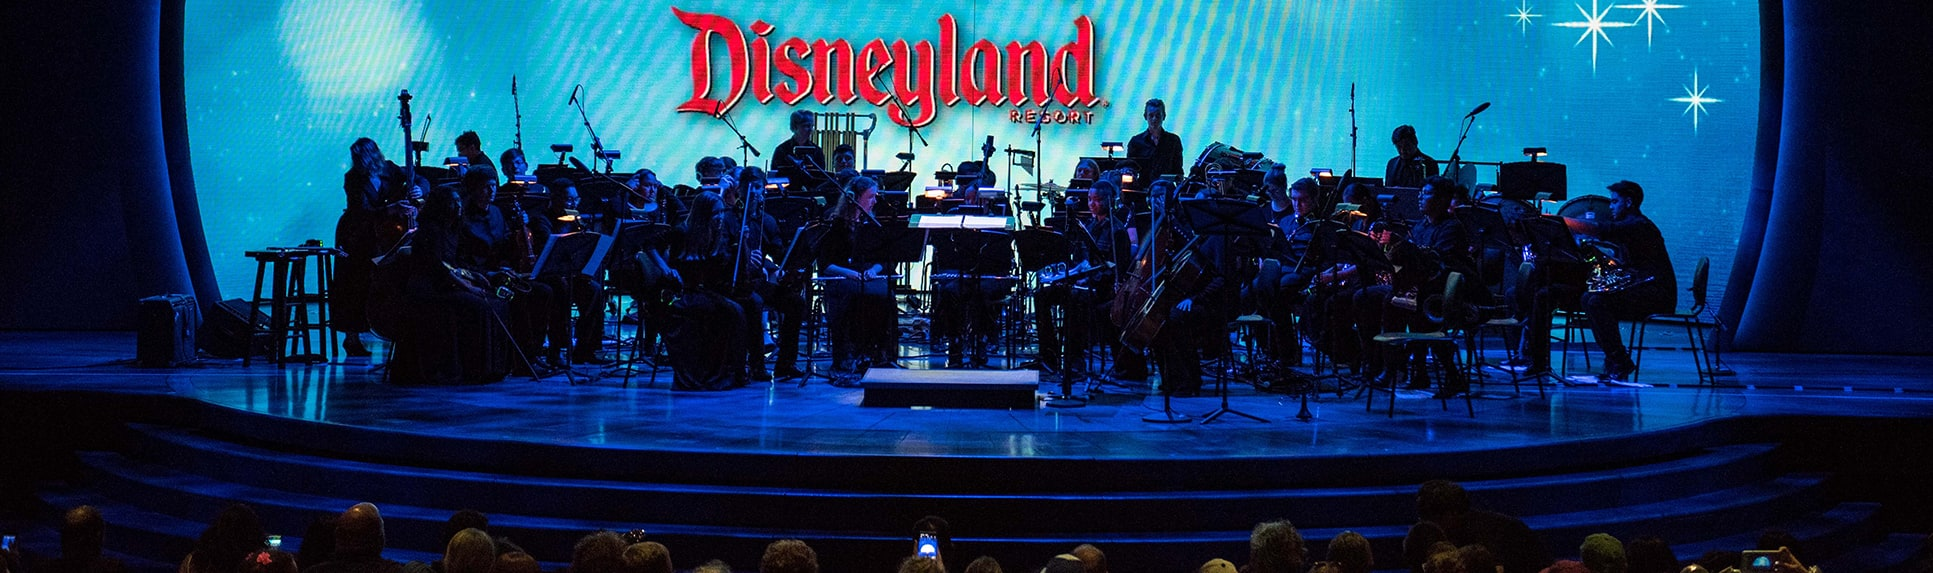 An orchestra on stage in front of a circular video screen backdrop reading Disney Performing Arts Conservatory Disneyland